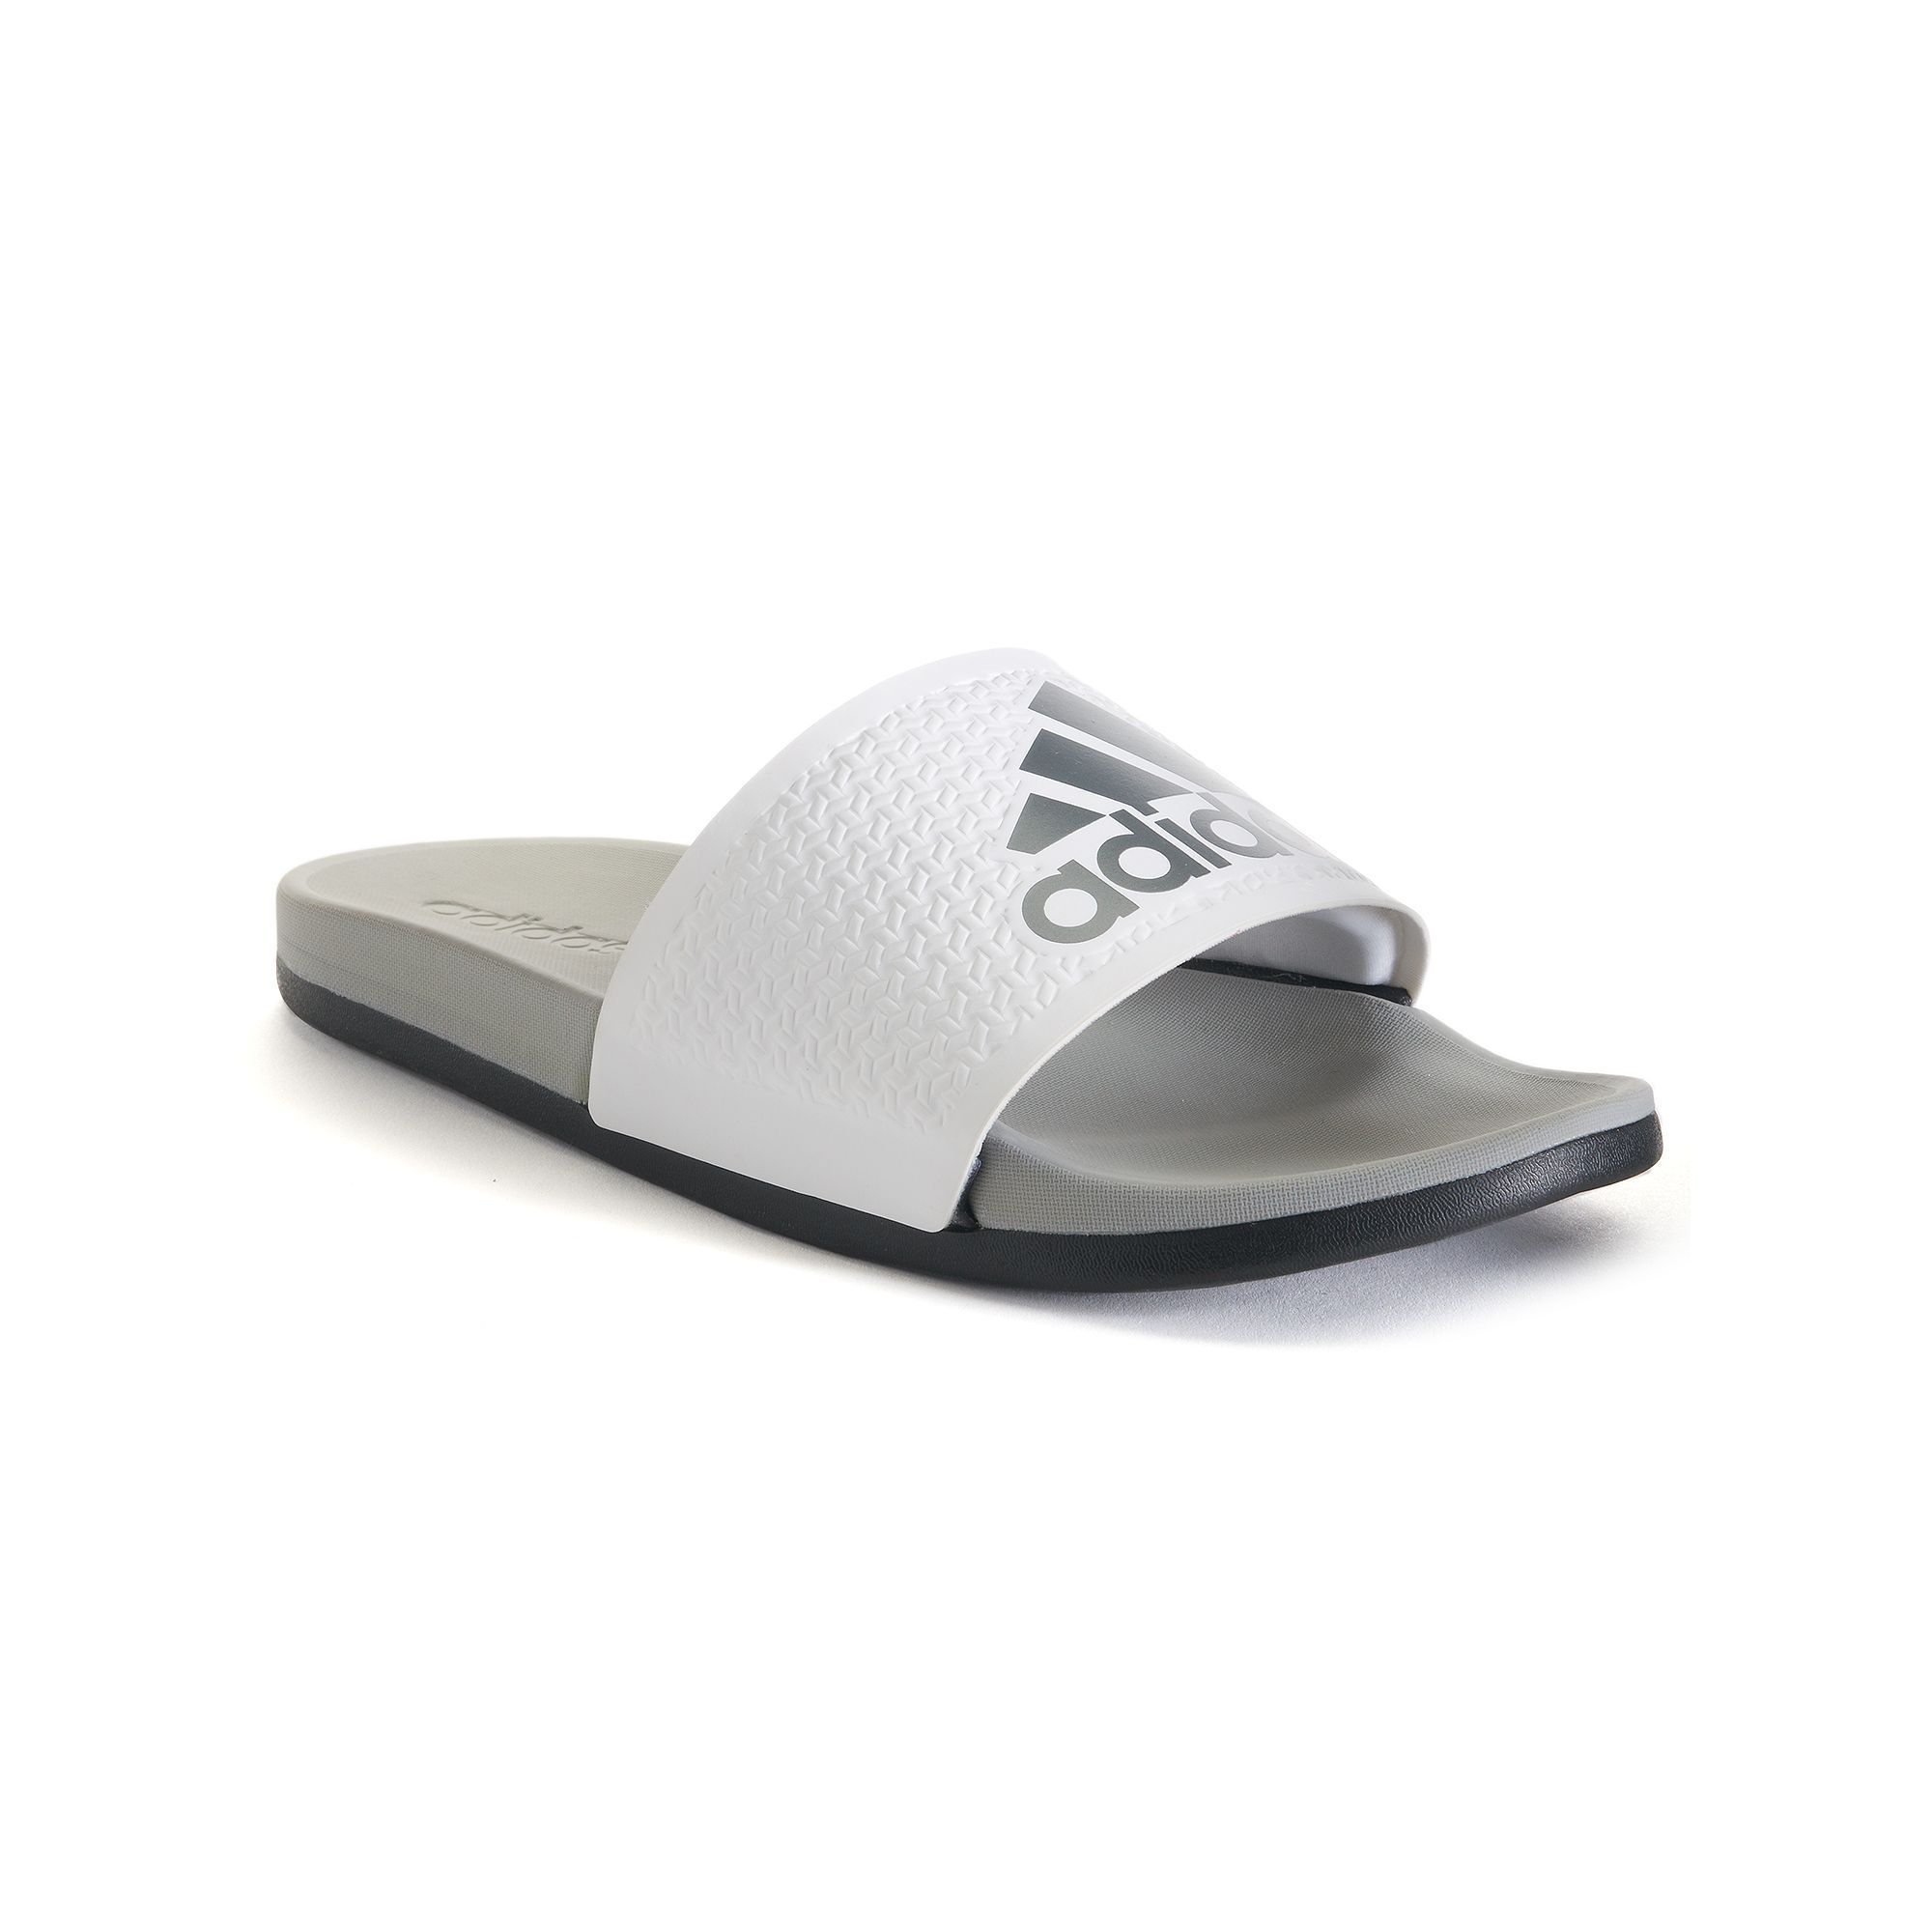 144945e188b9cd adidas Adilette Supercloud Plus Men s Slide Sandals